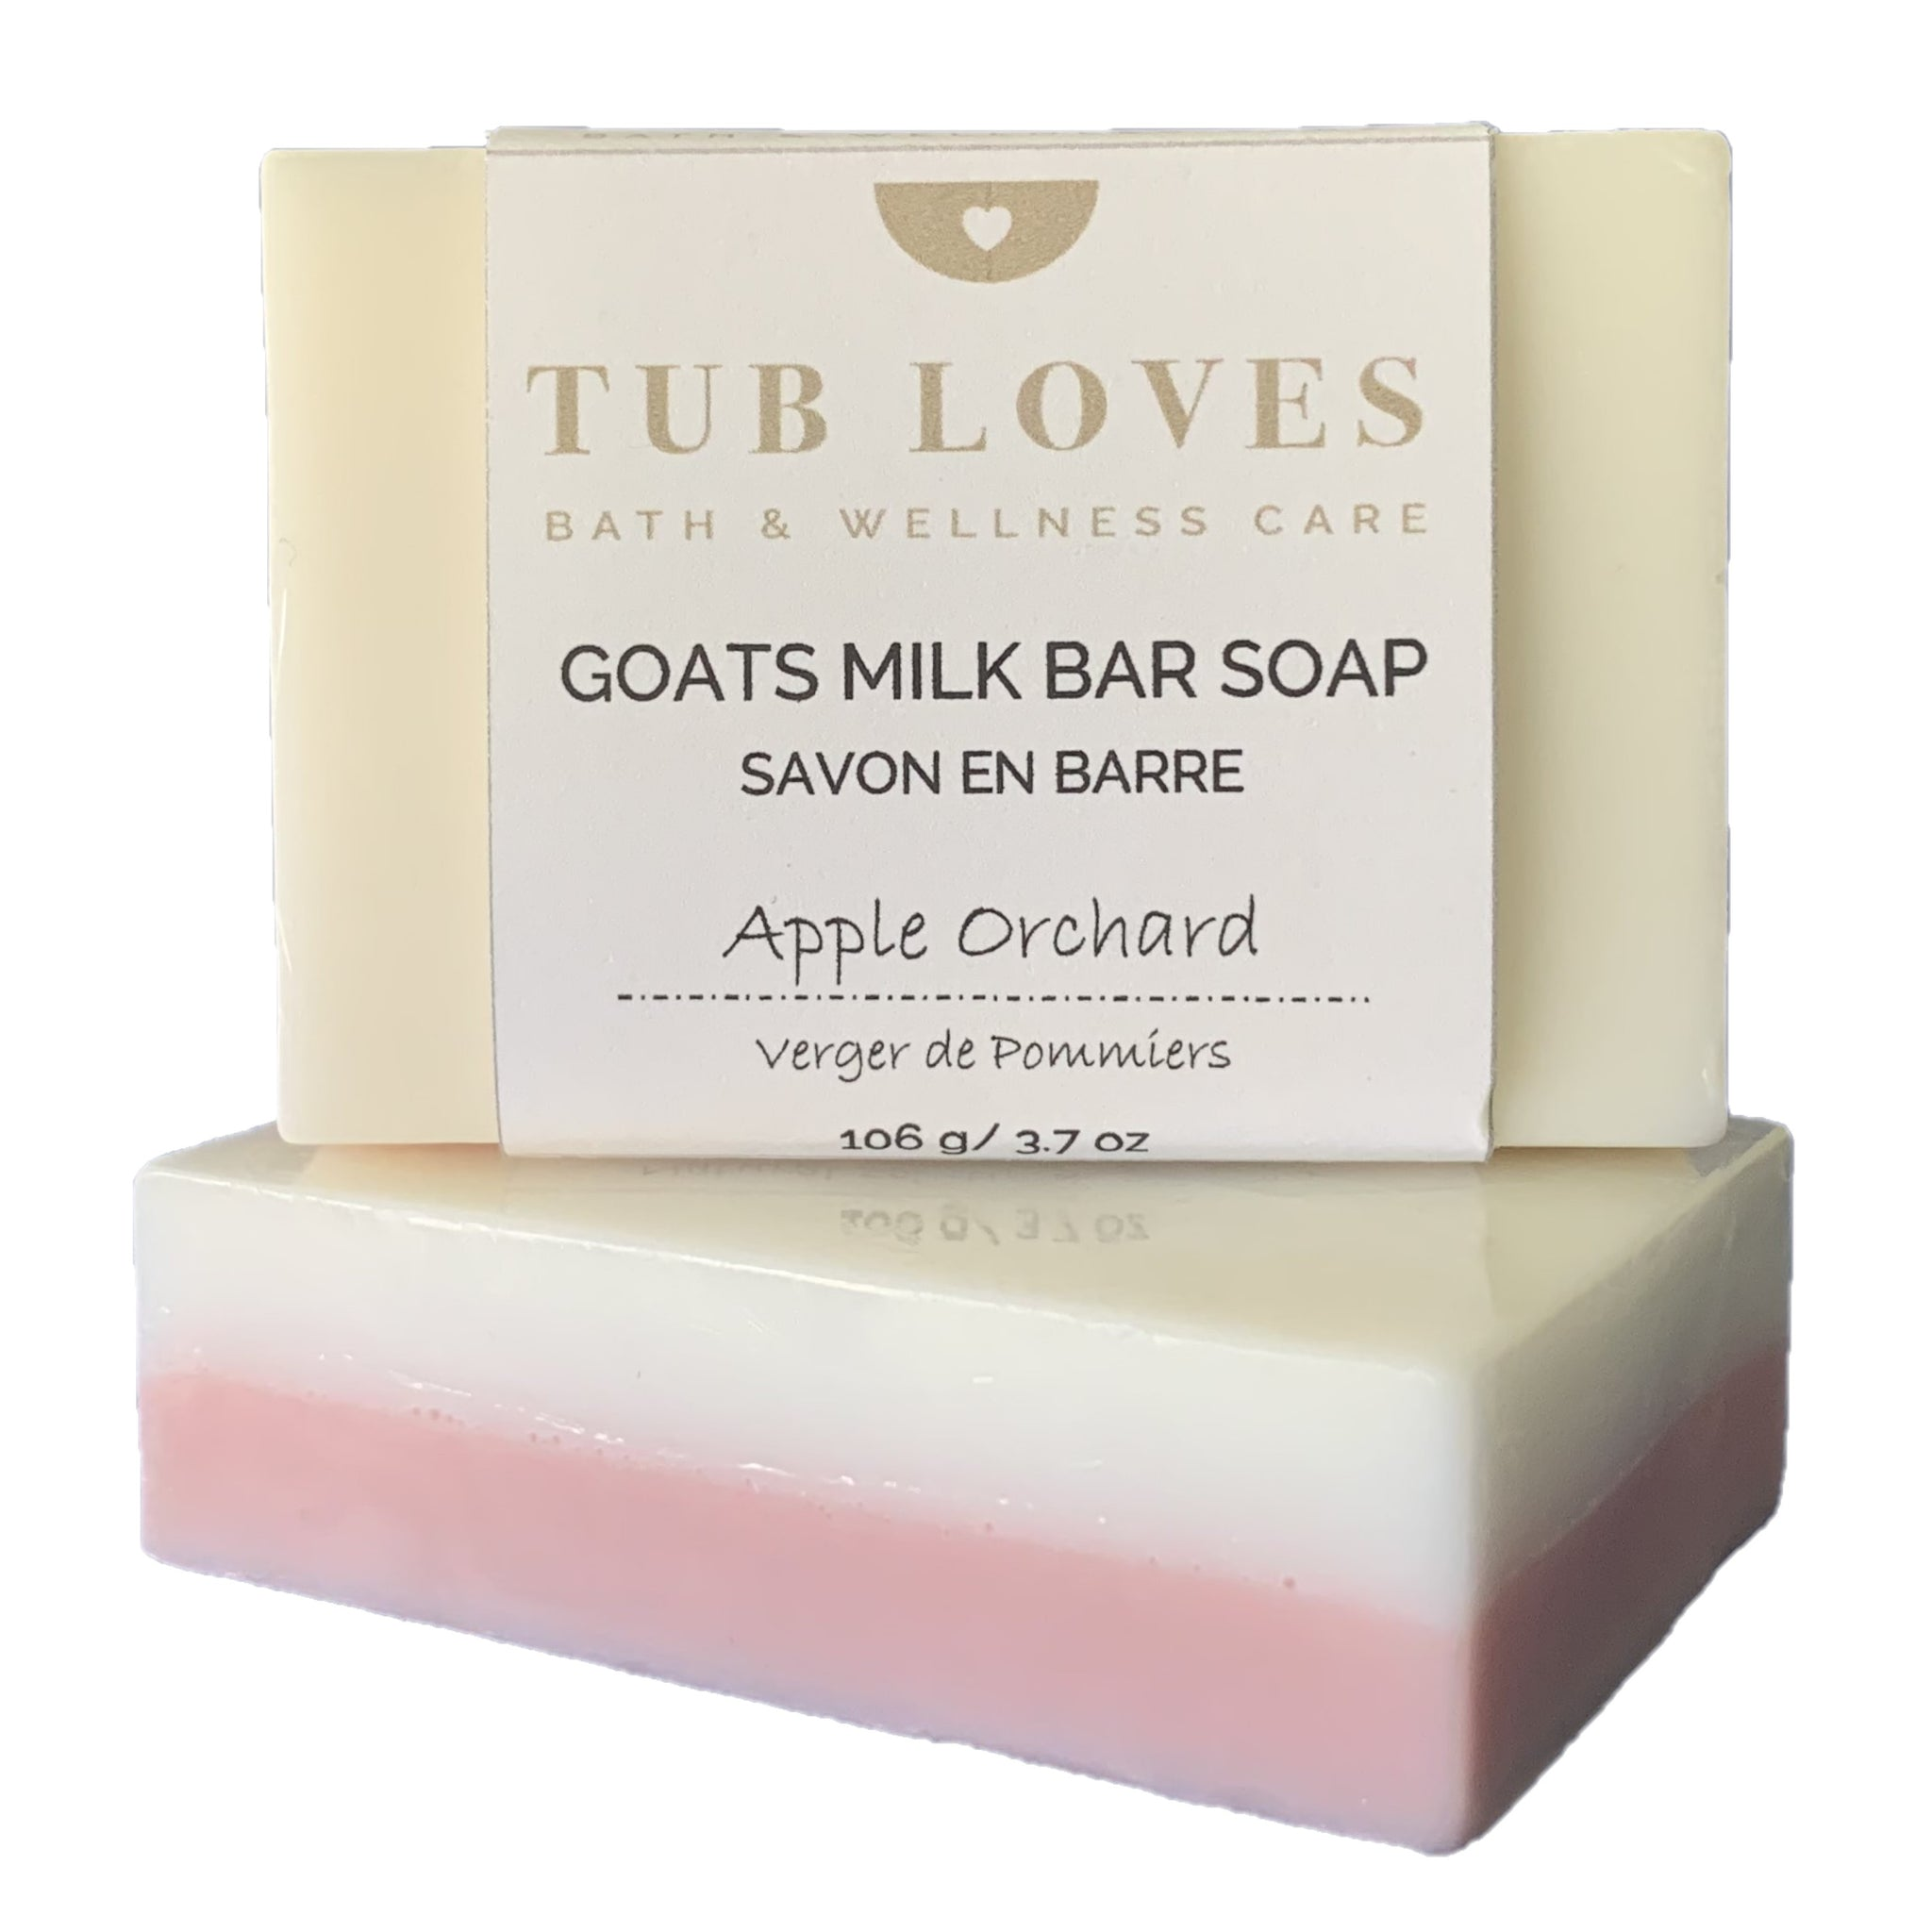 APPLE ORCHARD - GOATS MILK BAR SOAP